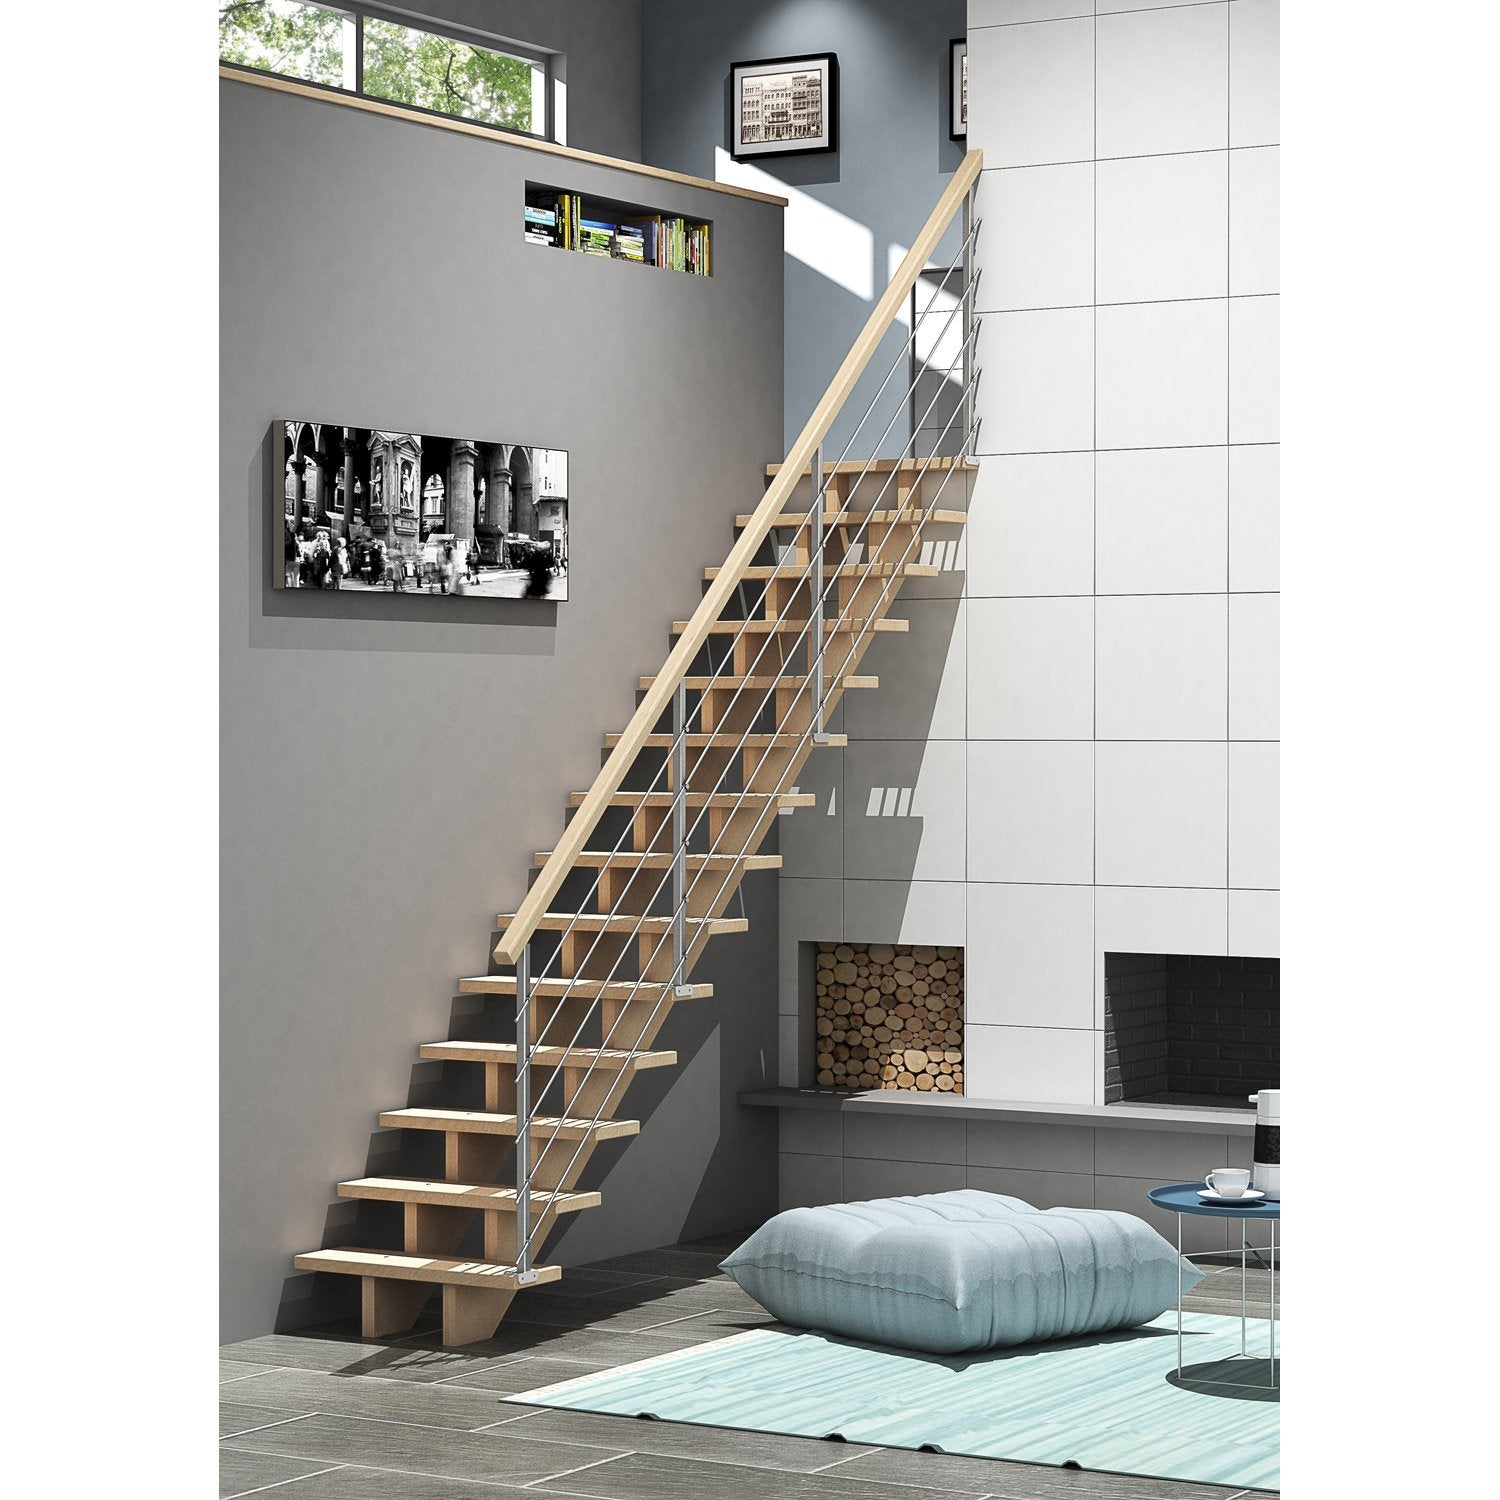 escalier droit allure tube structure bois marche bois leroy merlin. Black Bedroom Furniture Sets. Home Design Ideas